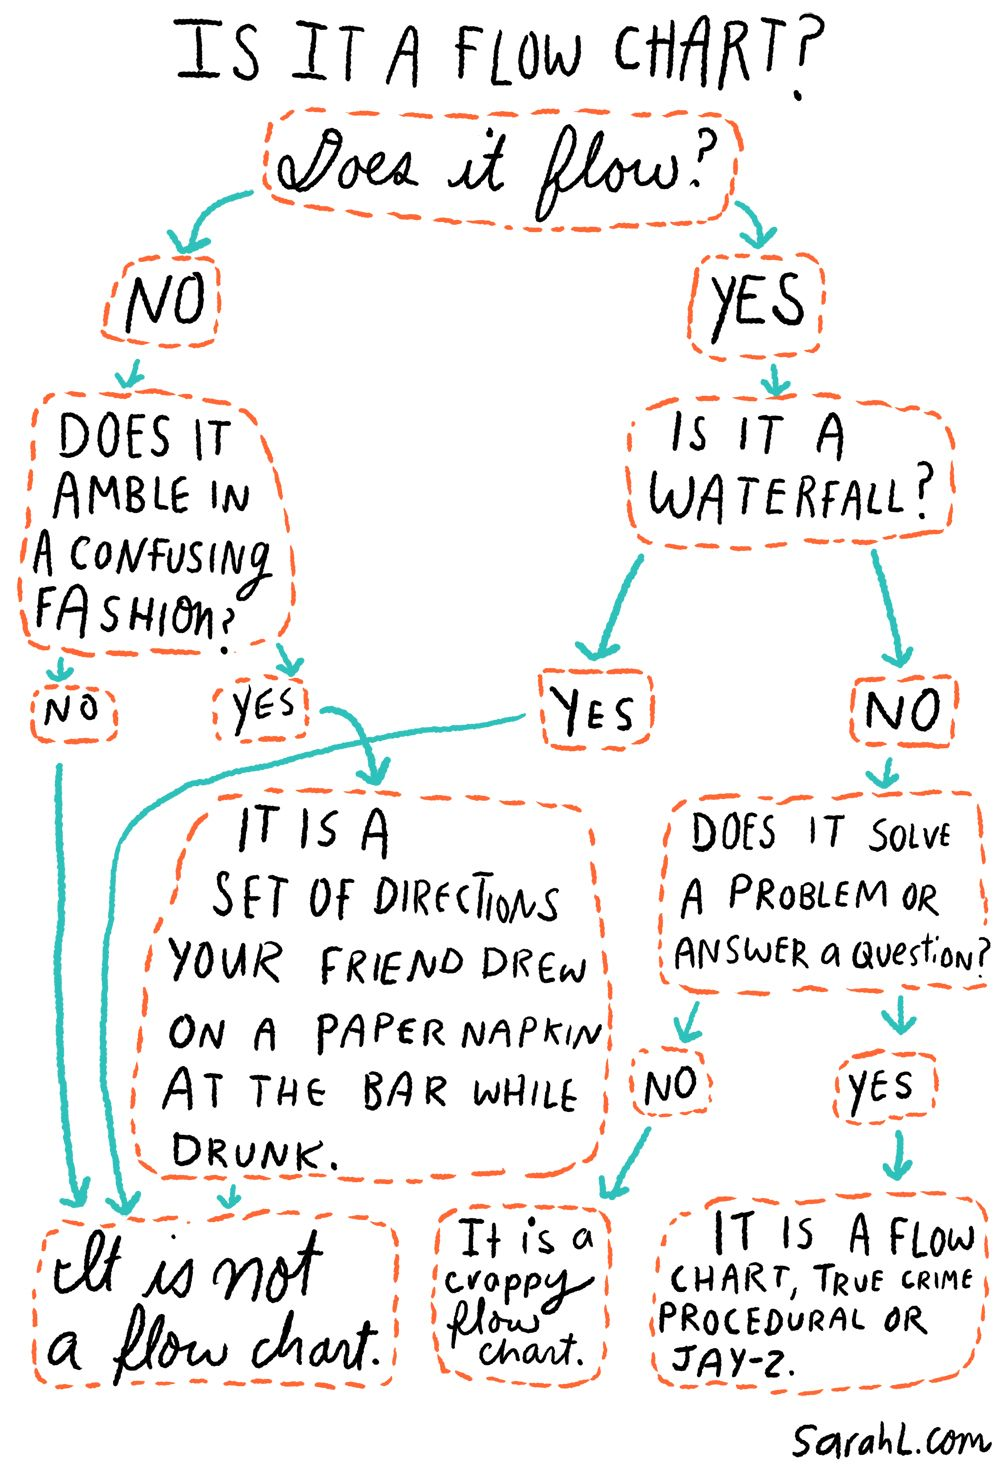 Is It A Flow Chart Flow Chart Funny Flow Charts Flow Chart Chart